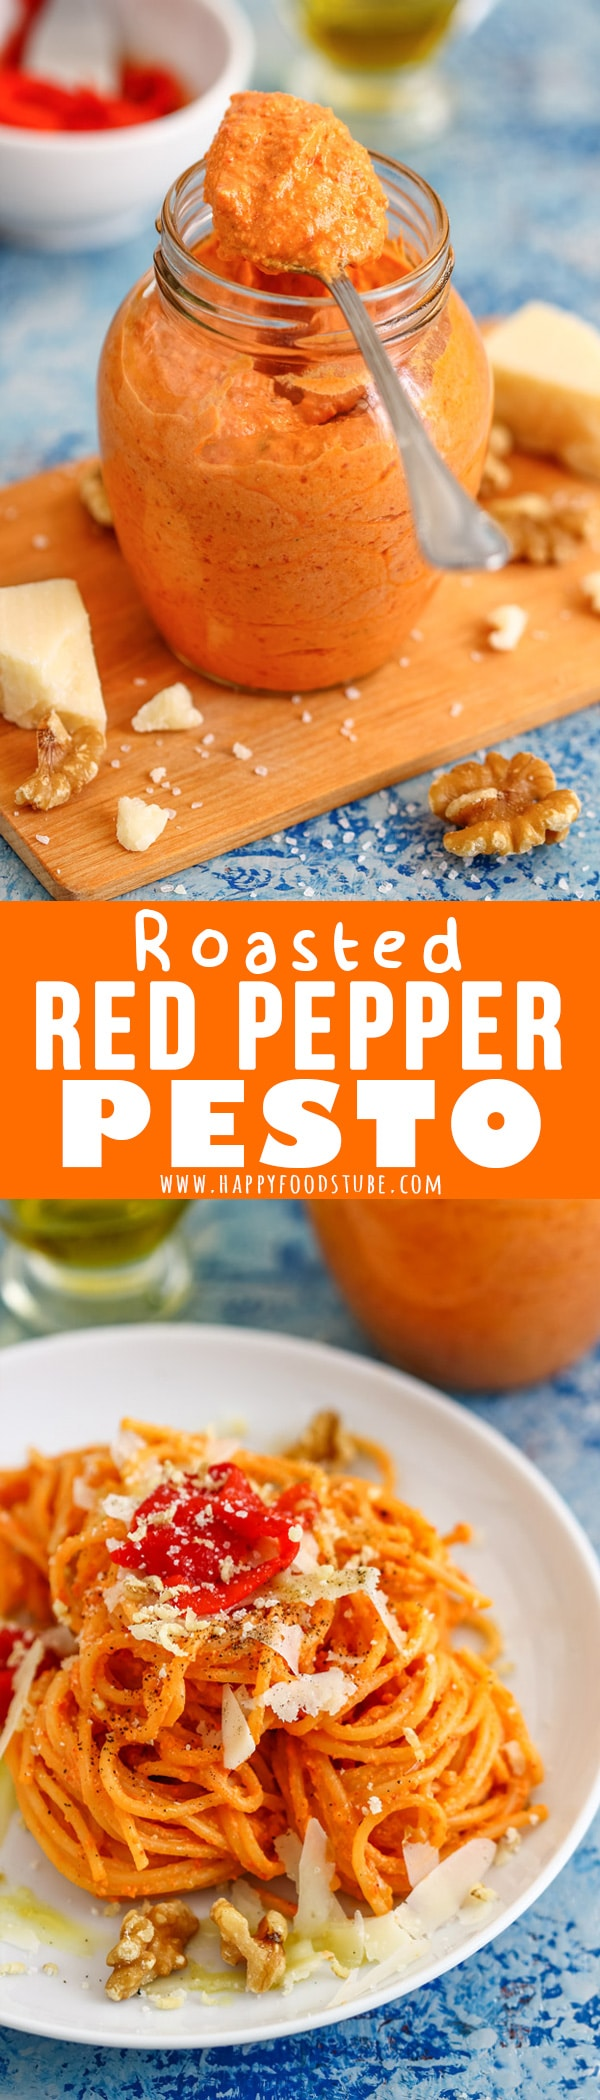 This Roasted Red Pepper Pesto is a great alternative for classic green pesto! It's perfect for quick weeknight dinners as it only takes 5 minutes to make. #pesto #redpesto #recipe #roastedpepper #vegetarian #glutenfree #homemade #howtomake